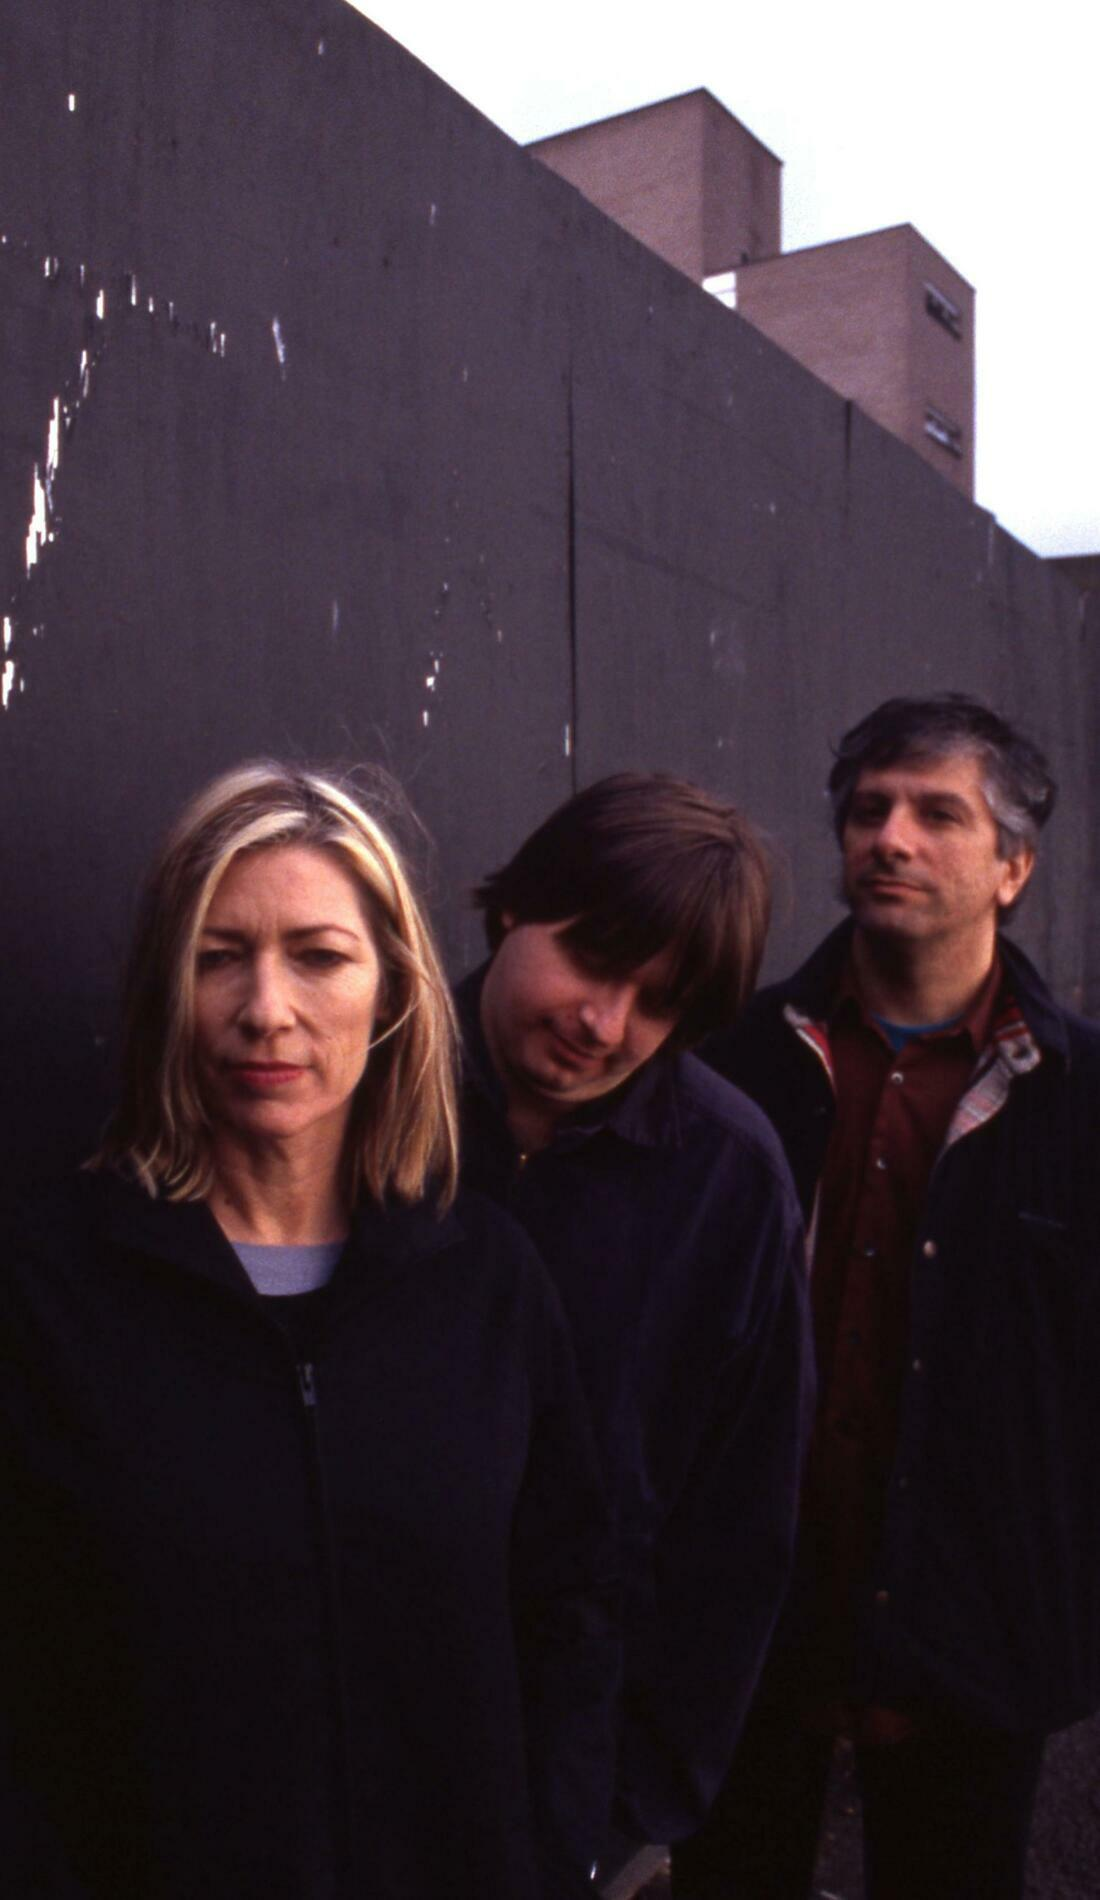 A Sonic Youth live event